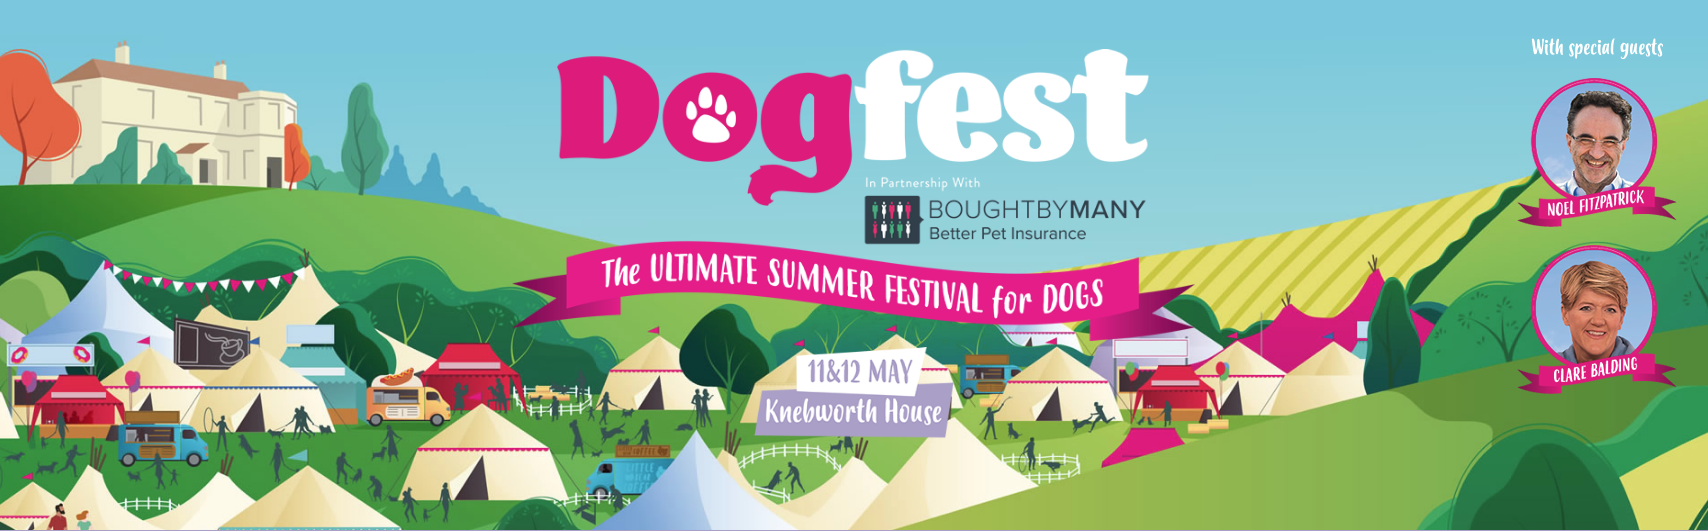 DogFest South Knebworth House 2019